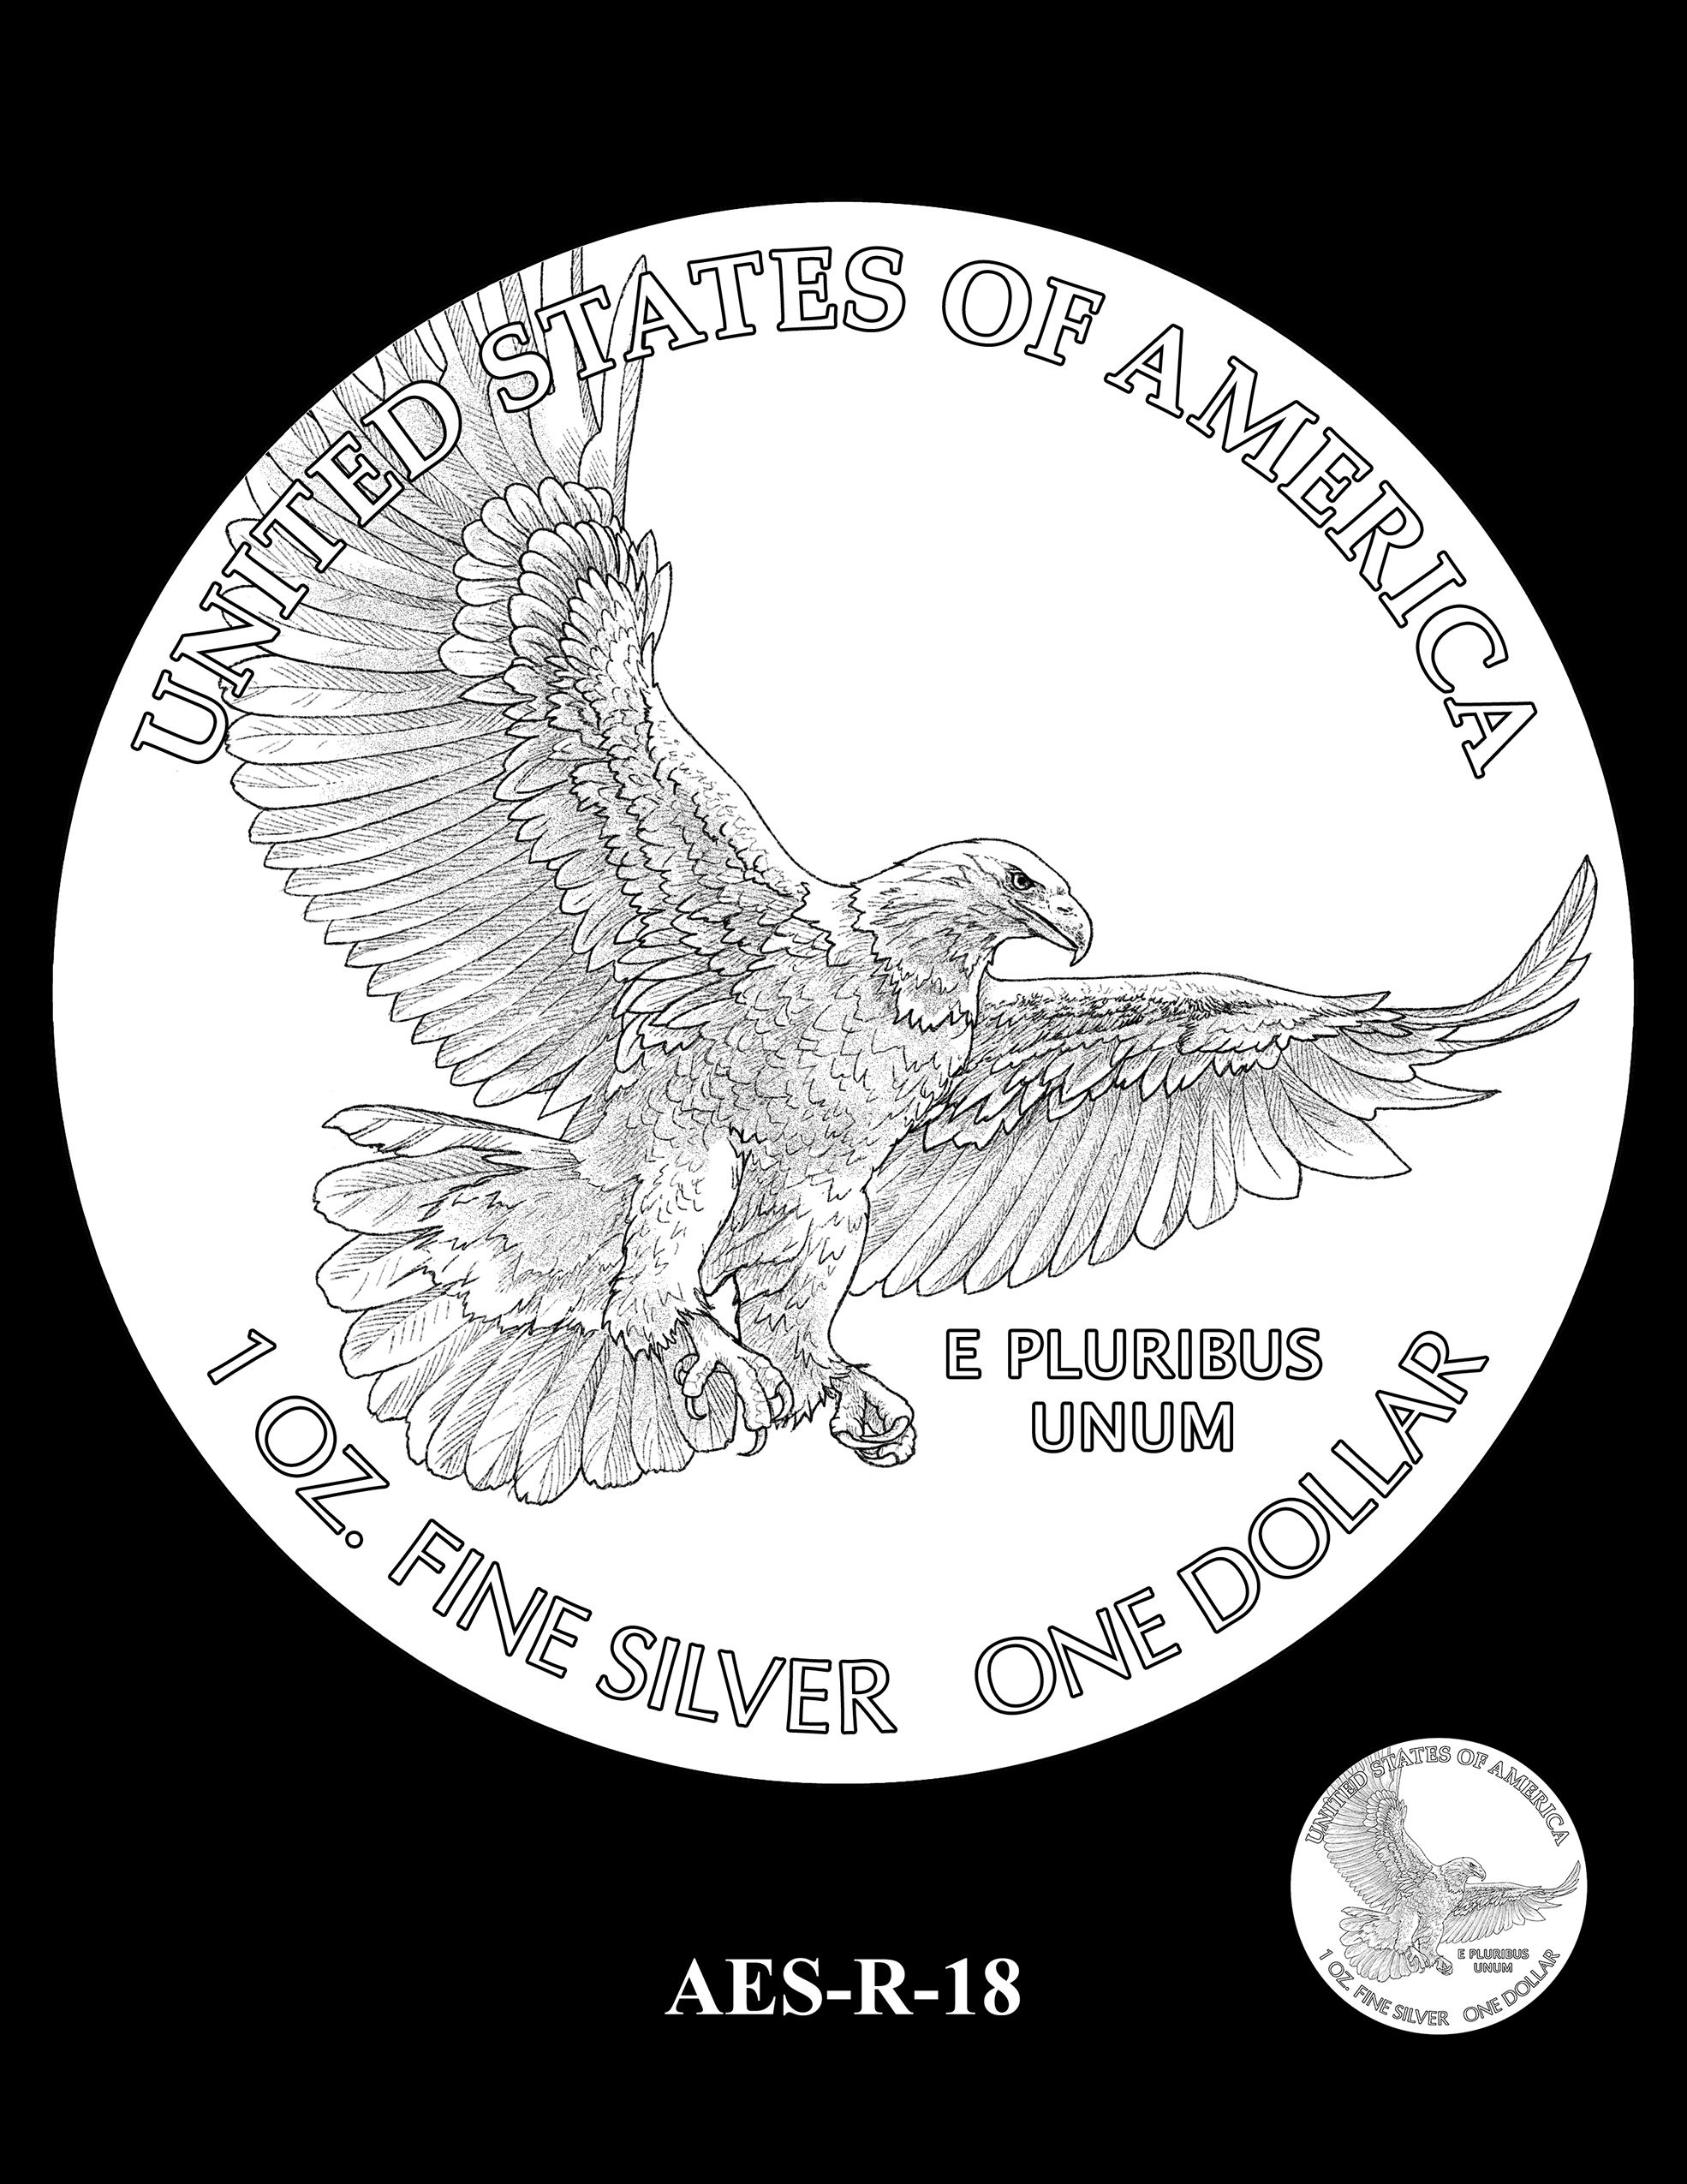 AES-R-18 -- American Eagle Proof and Bullion Silver Coin - Reverse